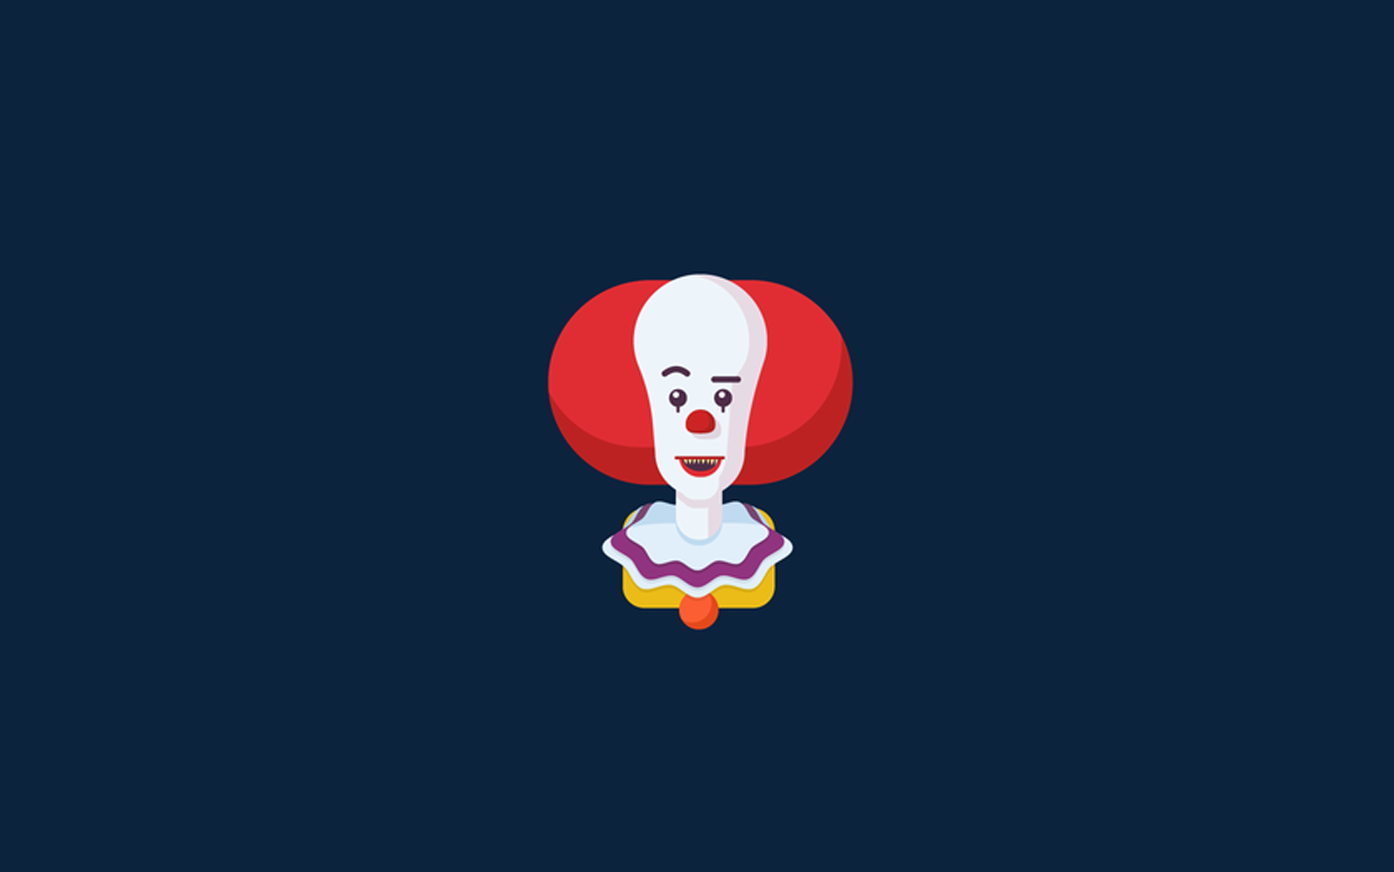 Here's Why People Find Clowns So Scary